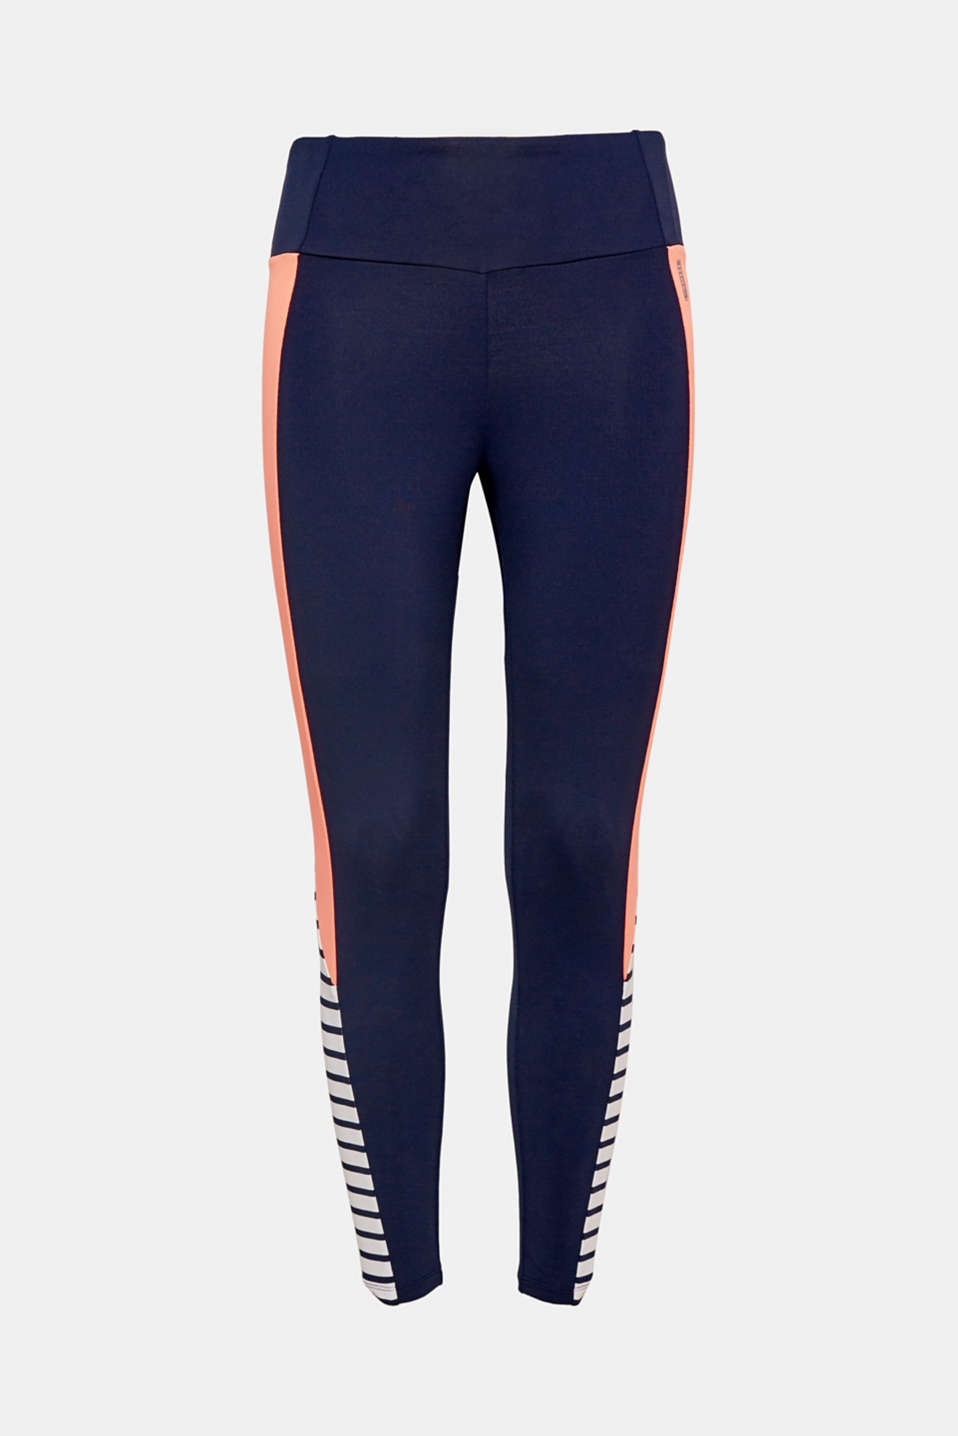 These active leggings in an airy capri length with neon colour blocking and positioned stripes are perfect for wearing throughout spring!